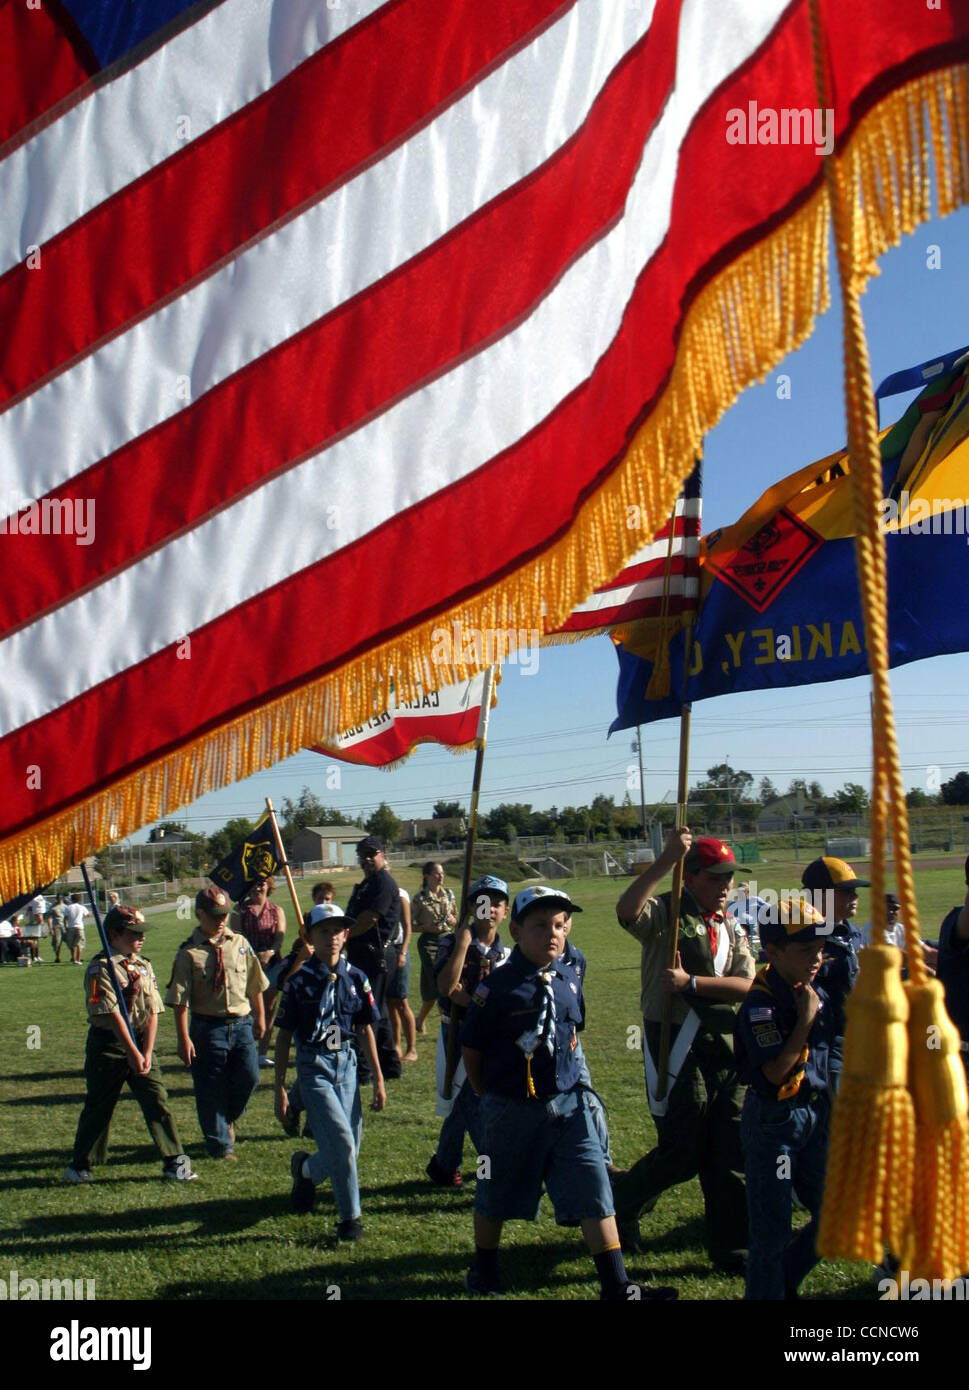 Cub Scouts from pack 155 and Boy Scouts from troop 298